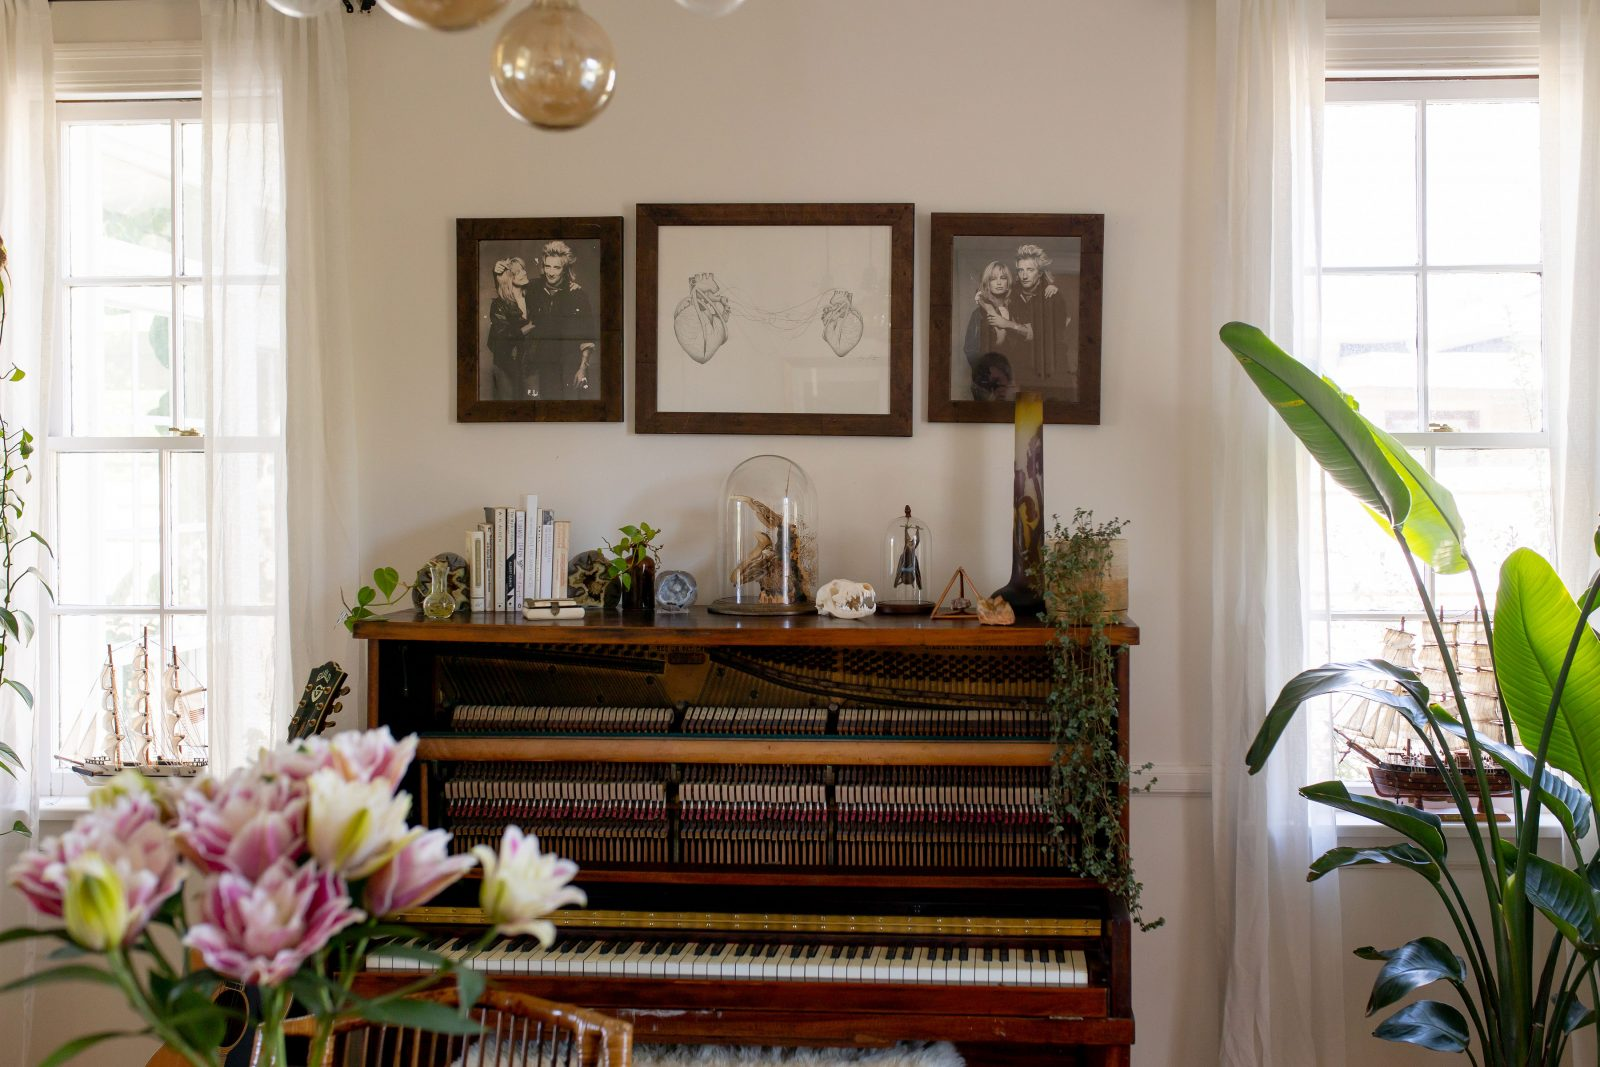 Ruby's piano with family pictures above it